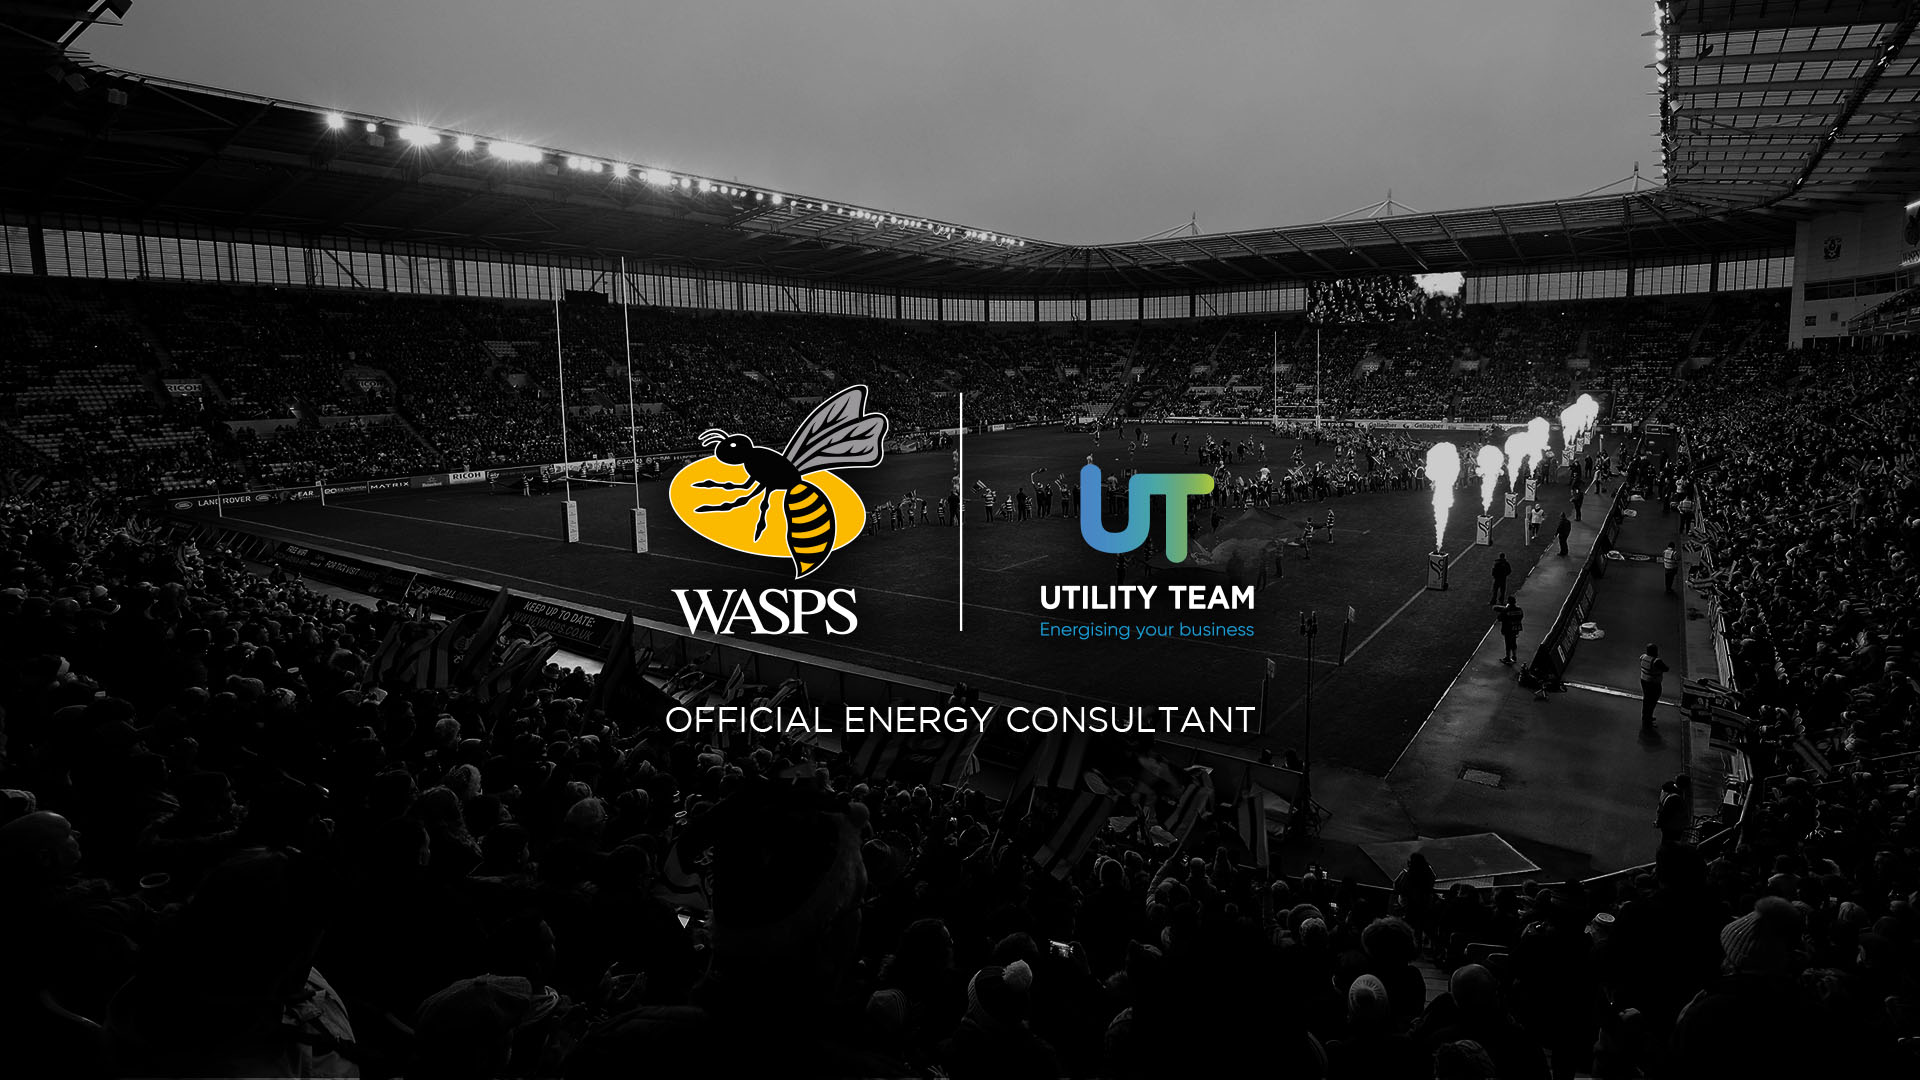 Utility Team become Wasps official energy consultant